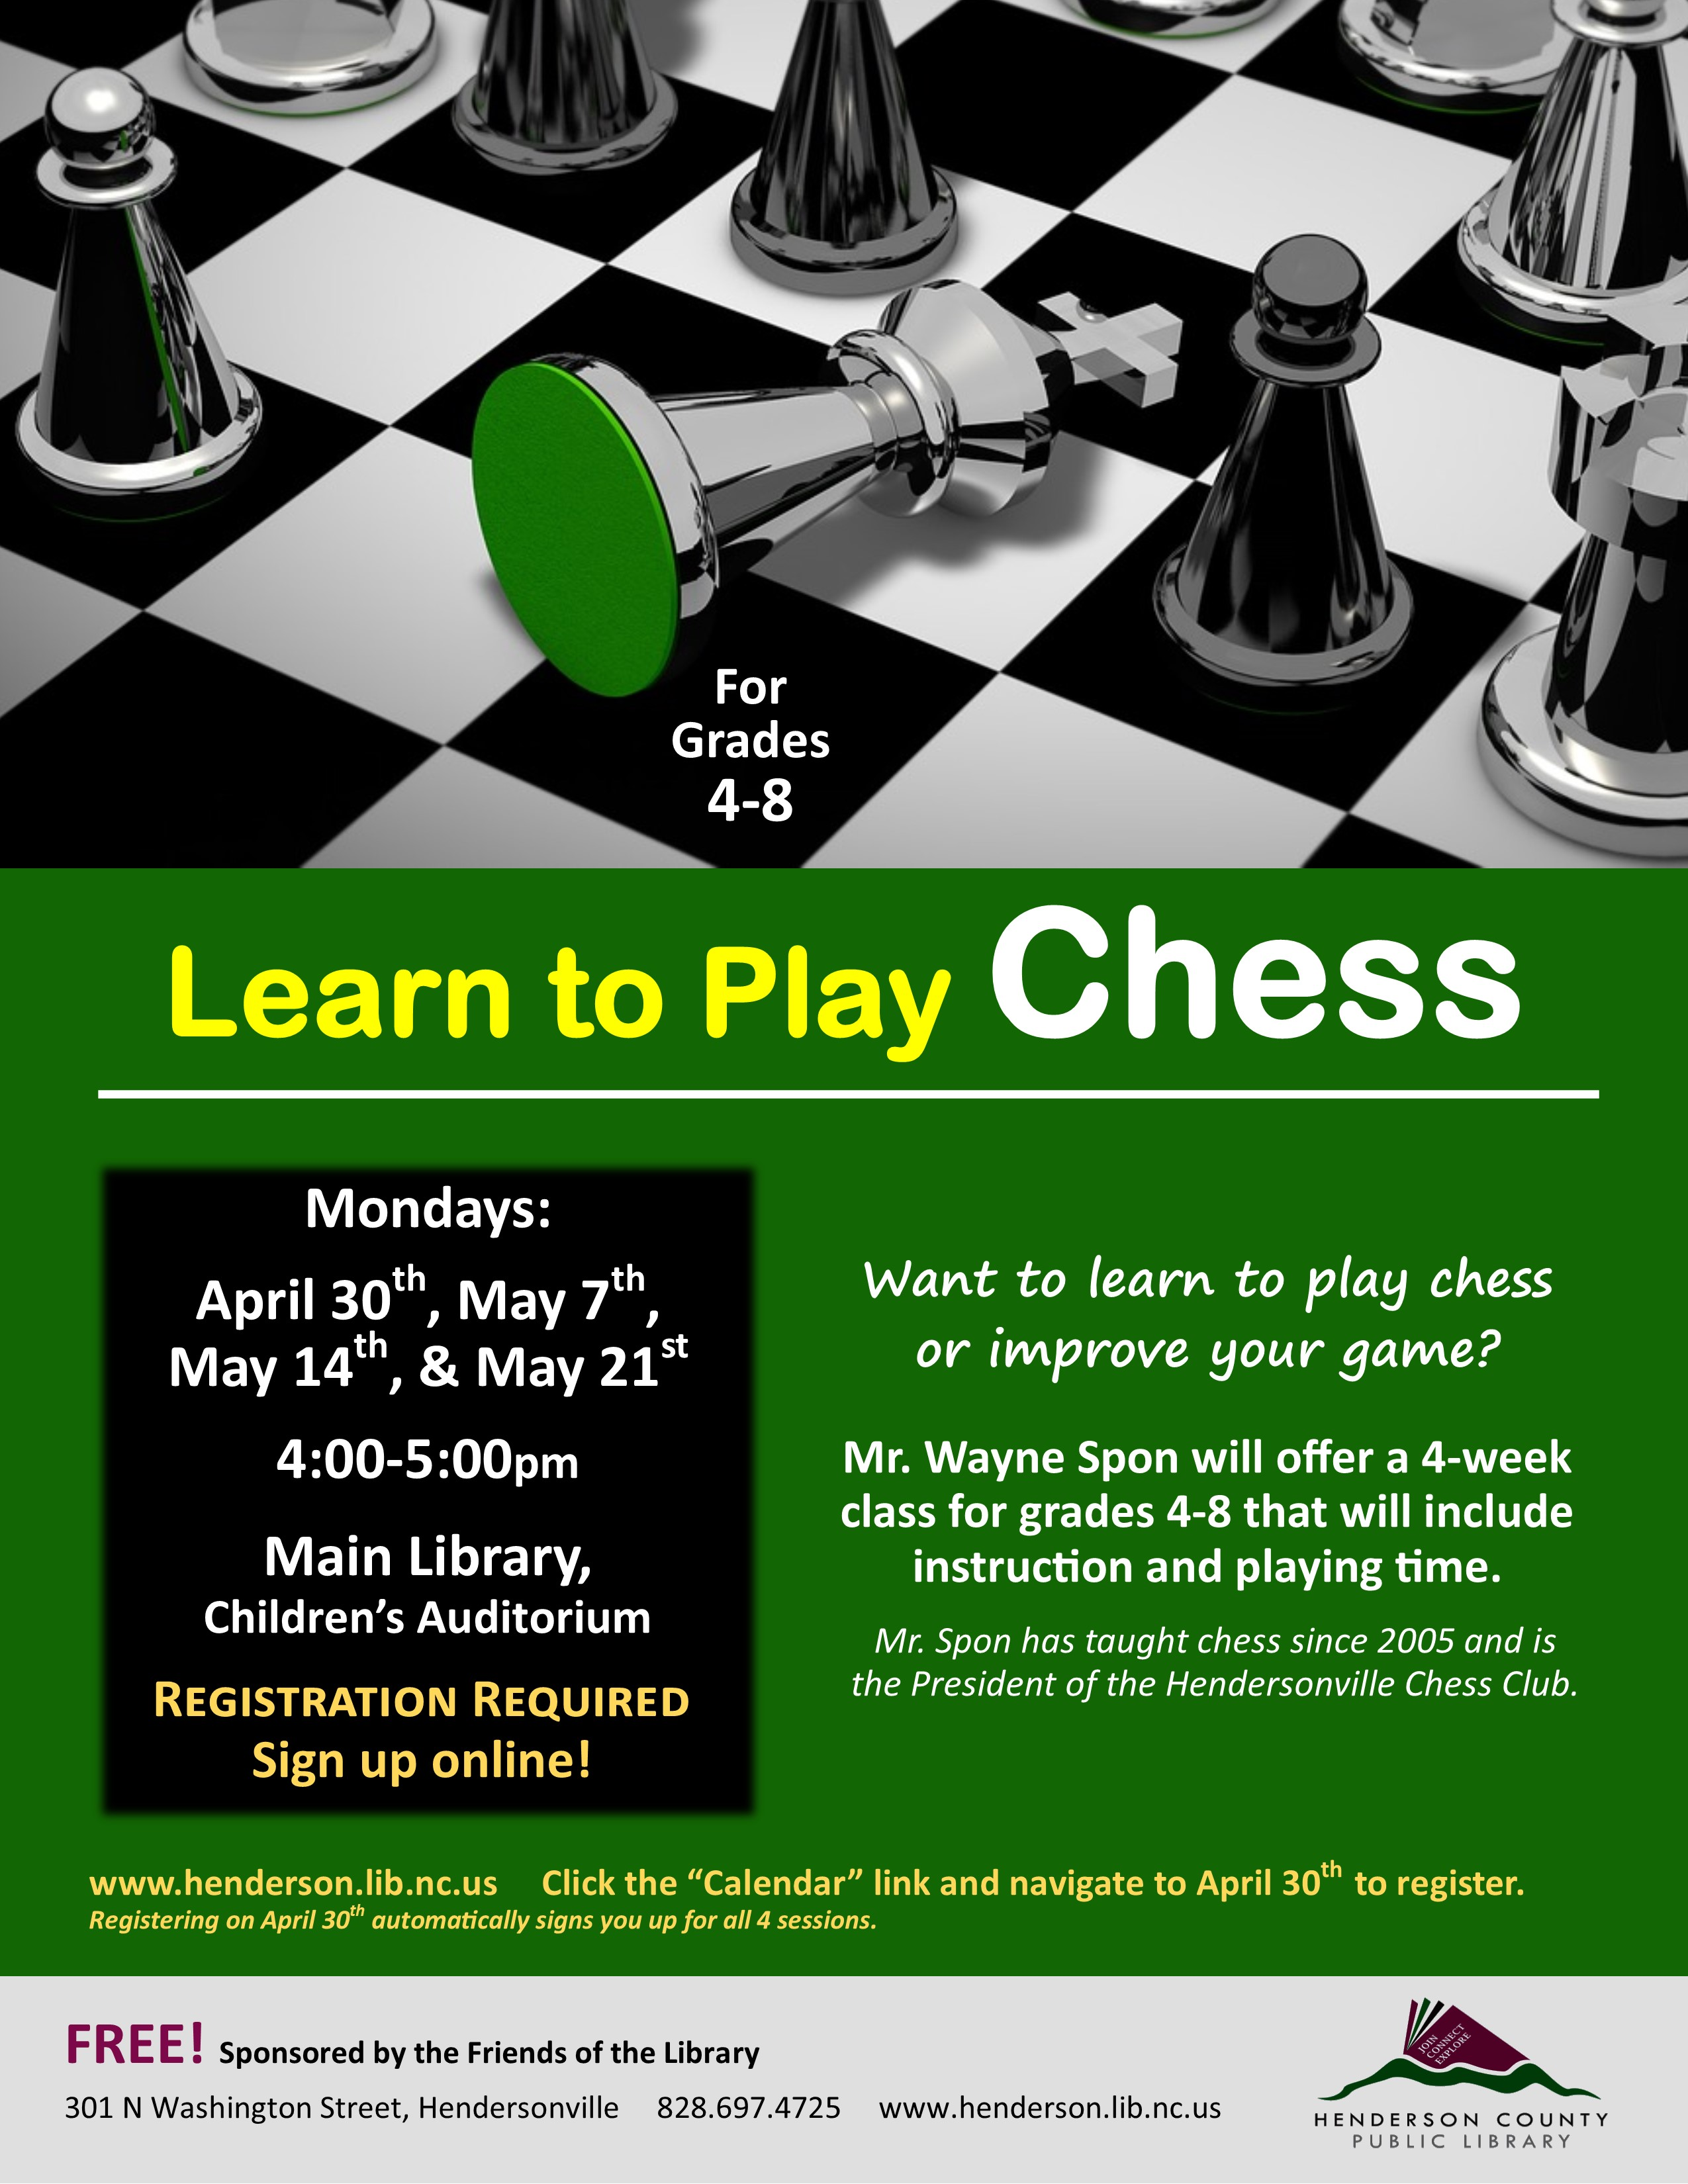 Main Library Learn to Play Chess